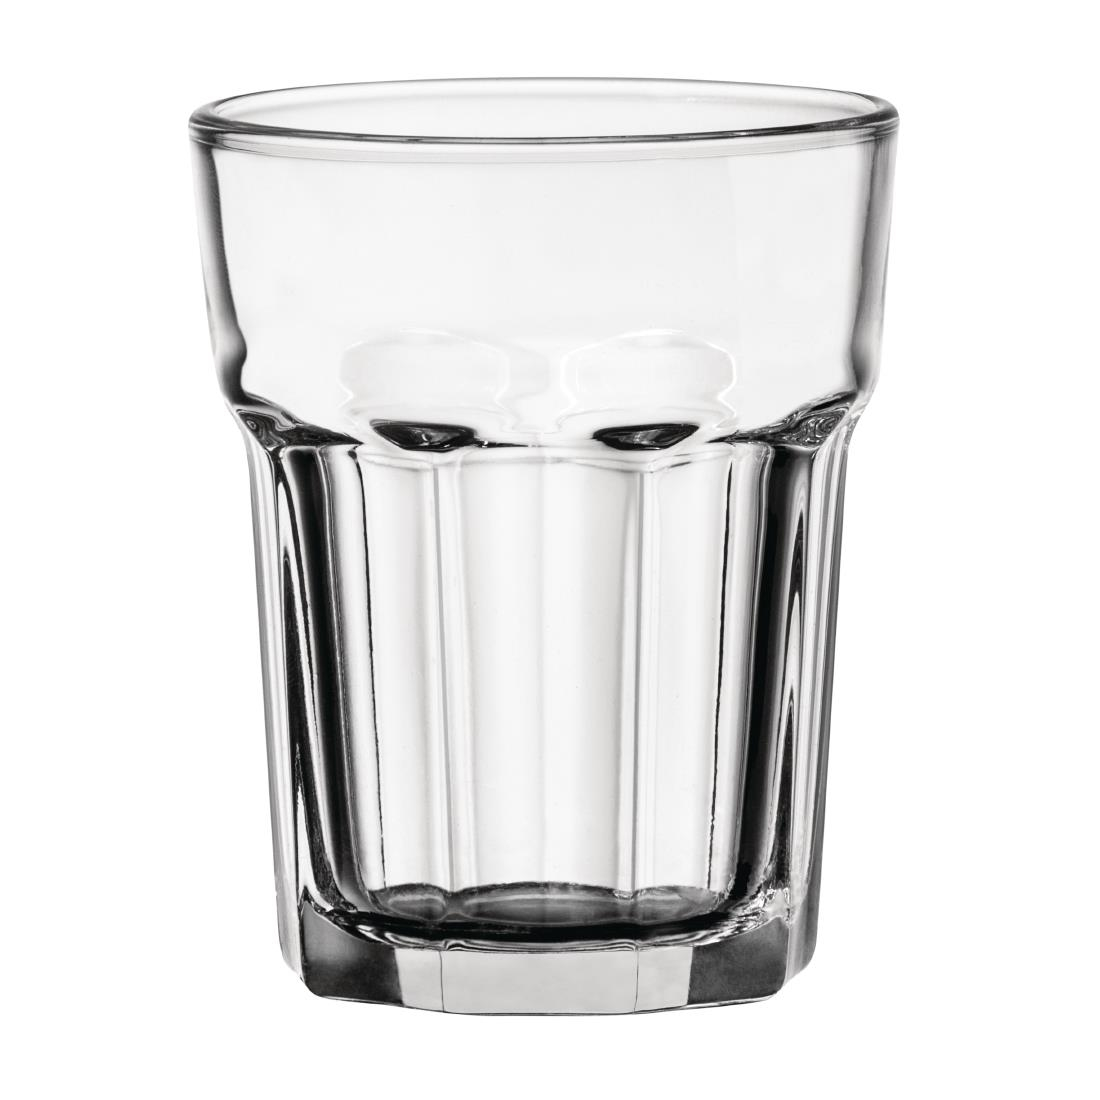 Olympia Toughened Orleans Tumblers 200ml (Pack of 12) - GF938 ...